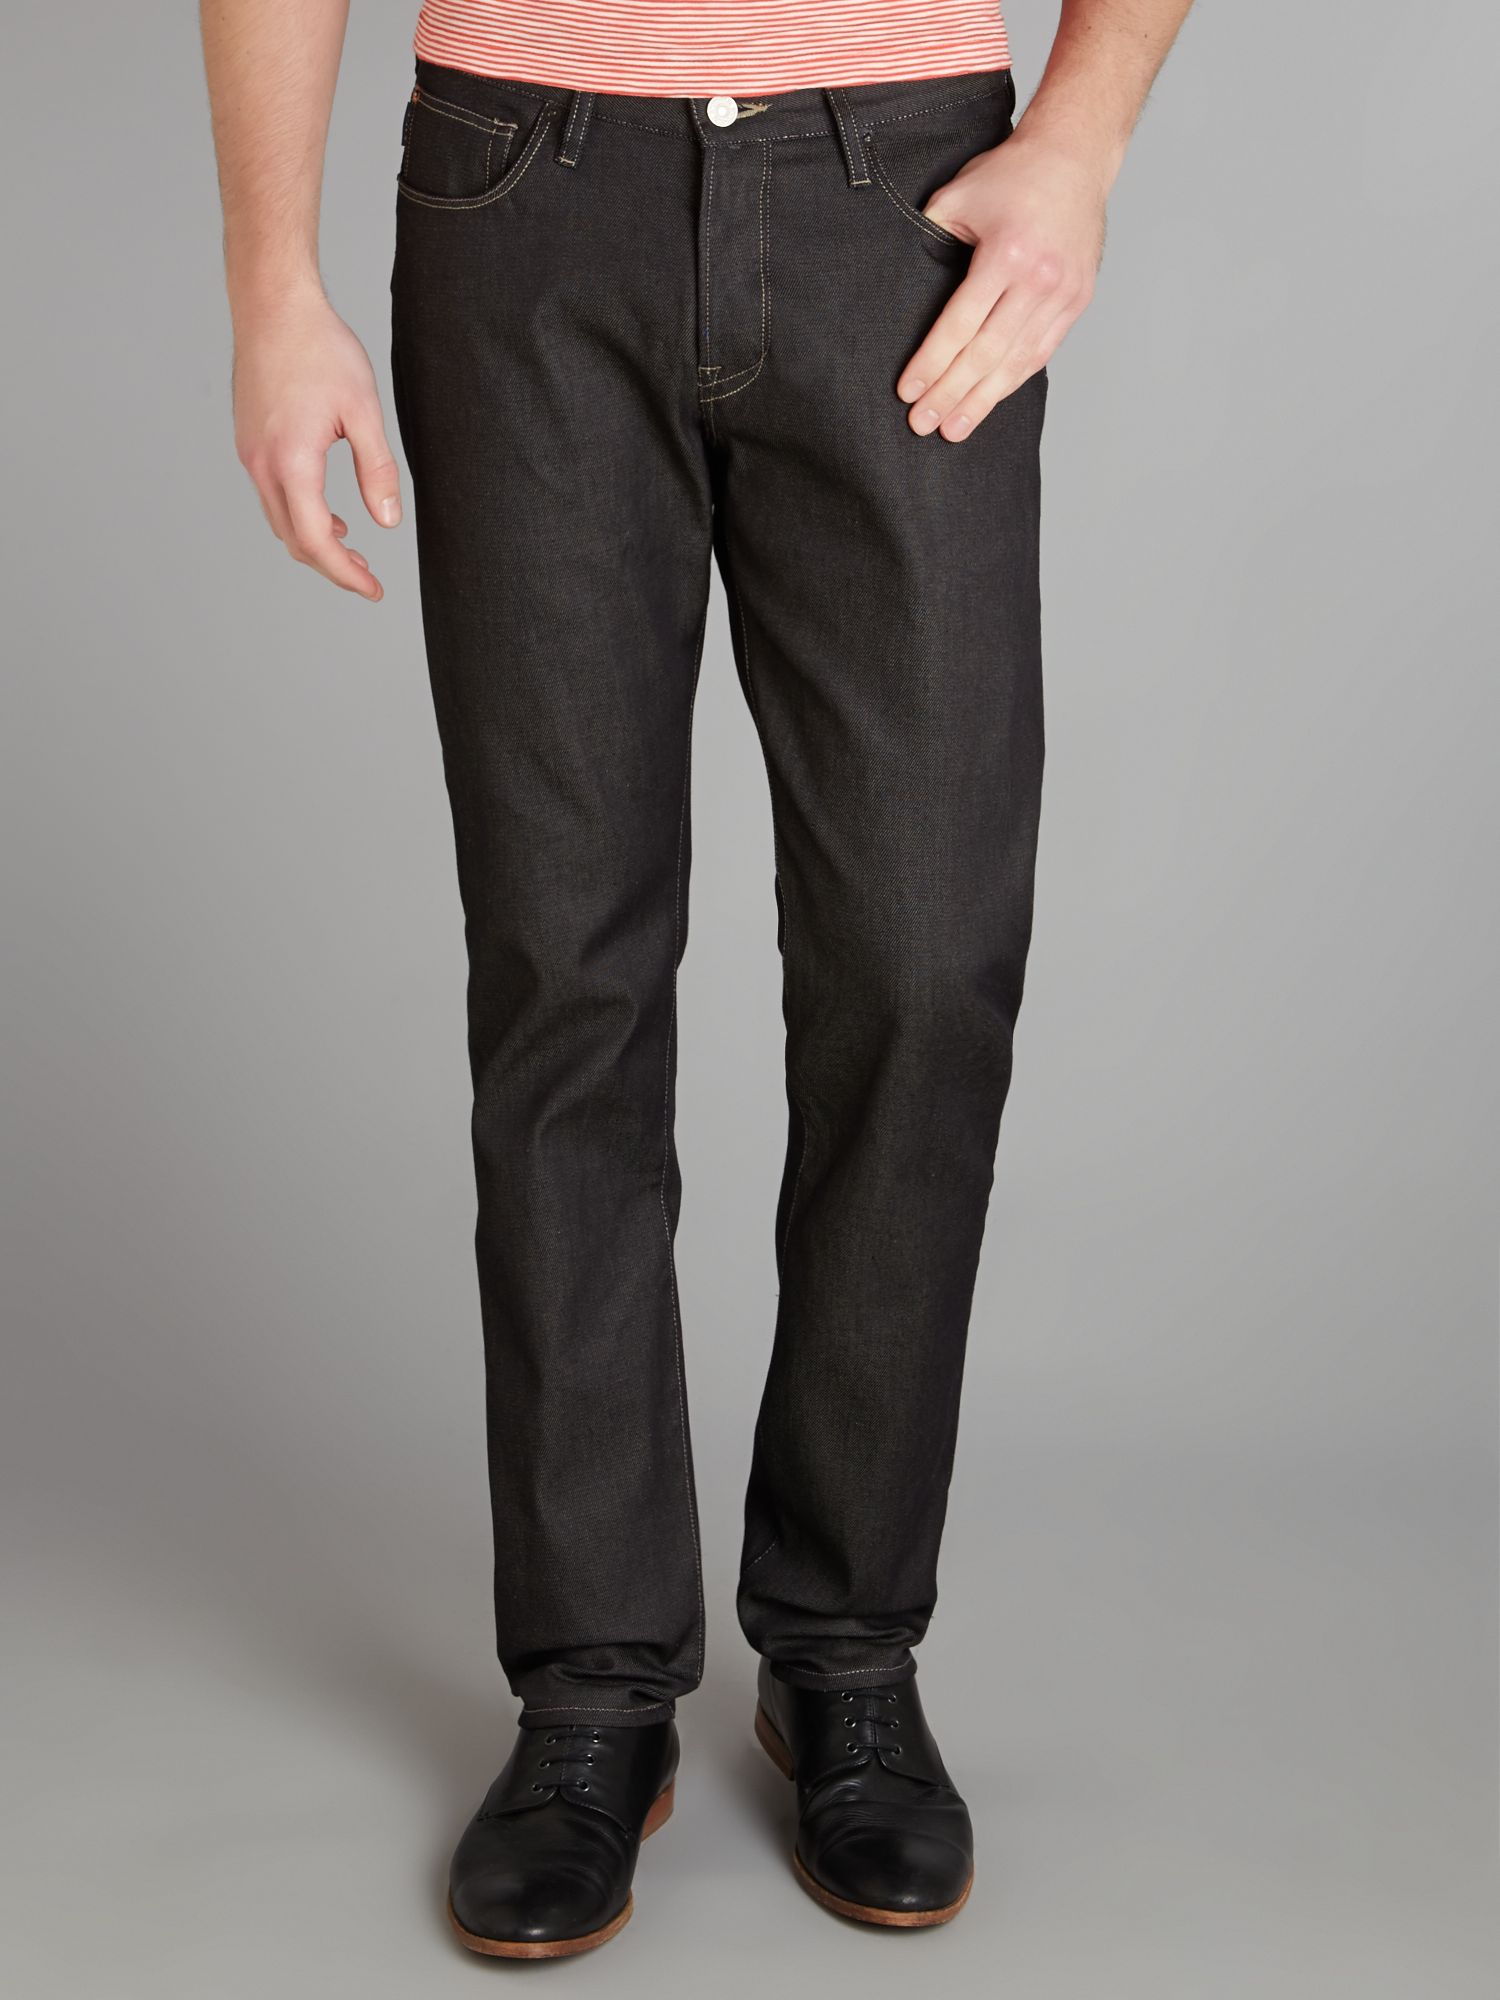 Dark indigo tapered jean